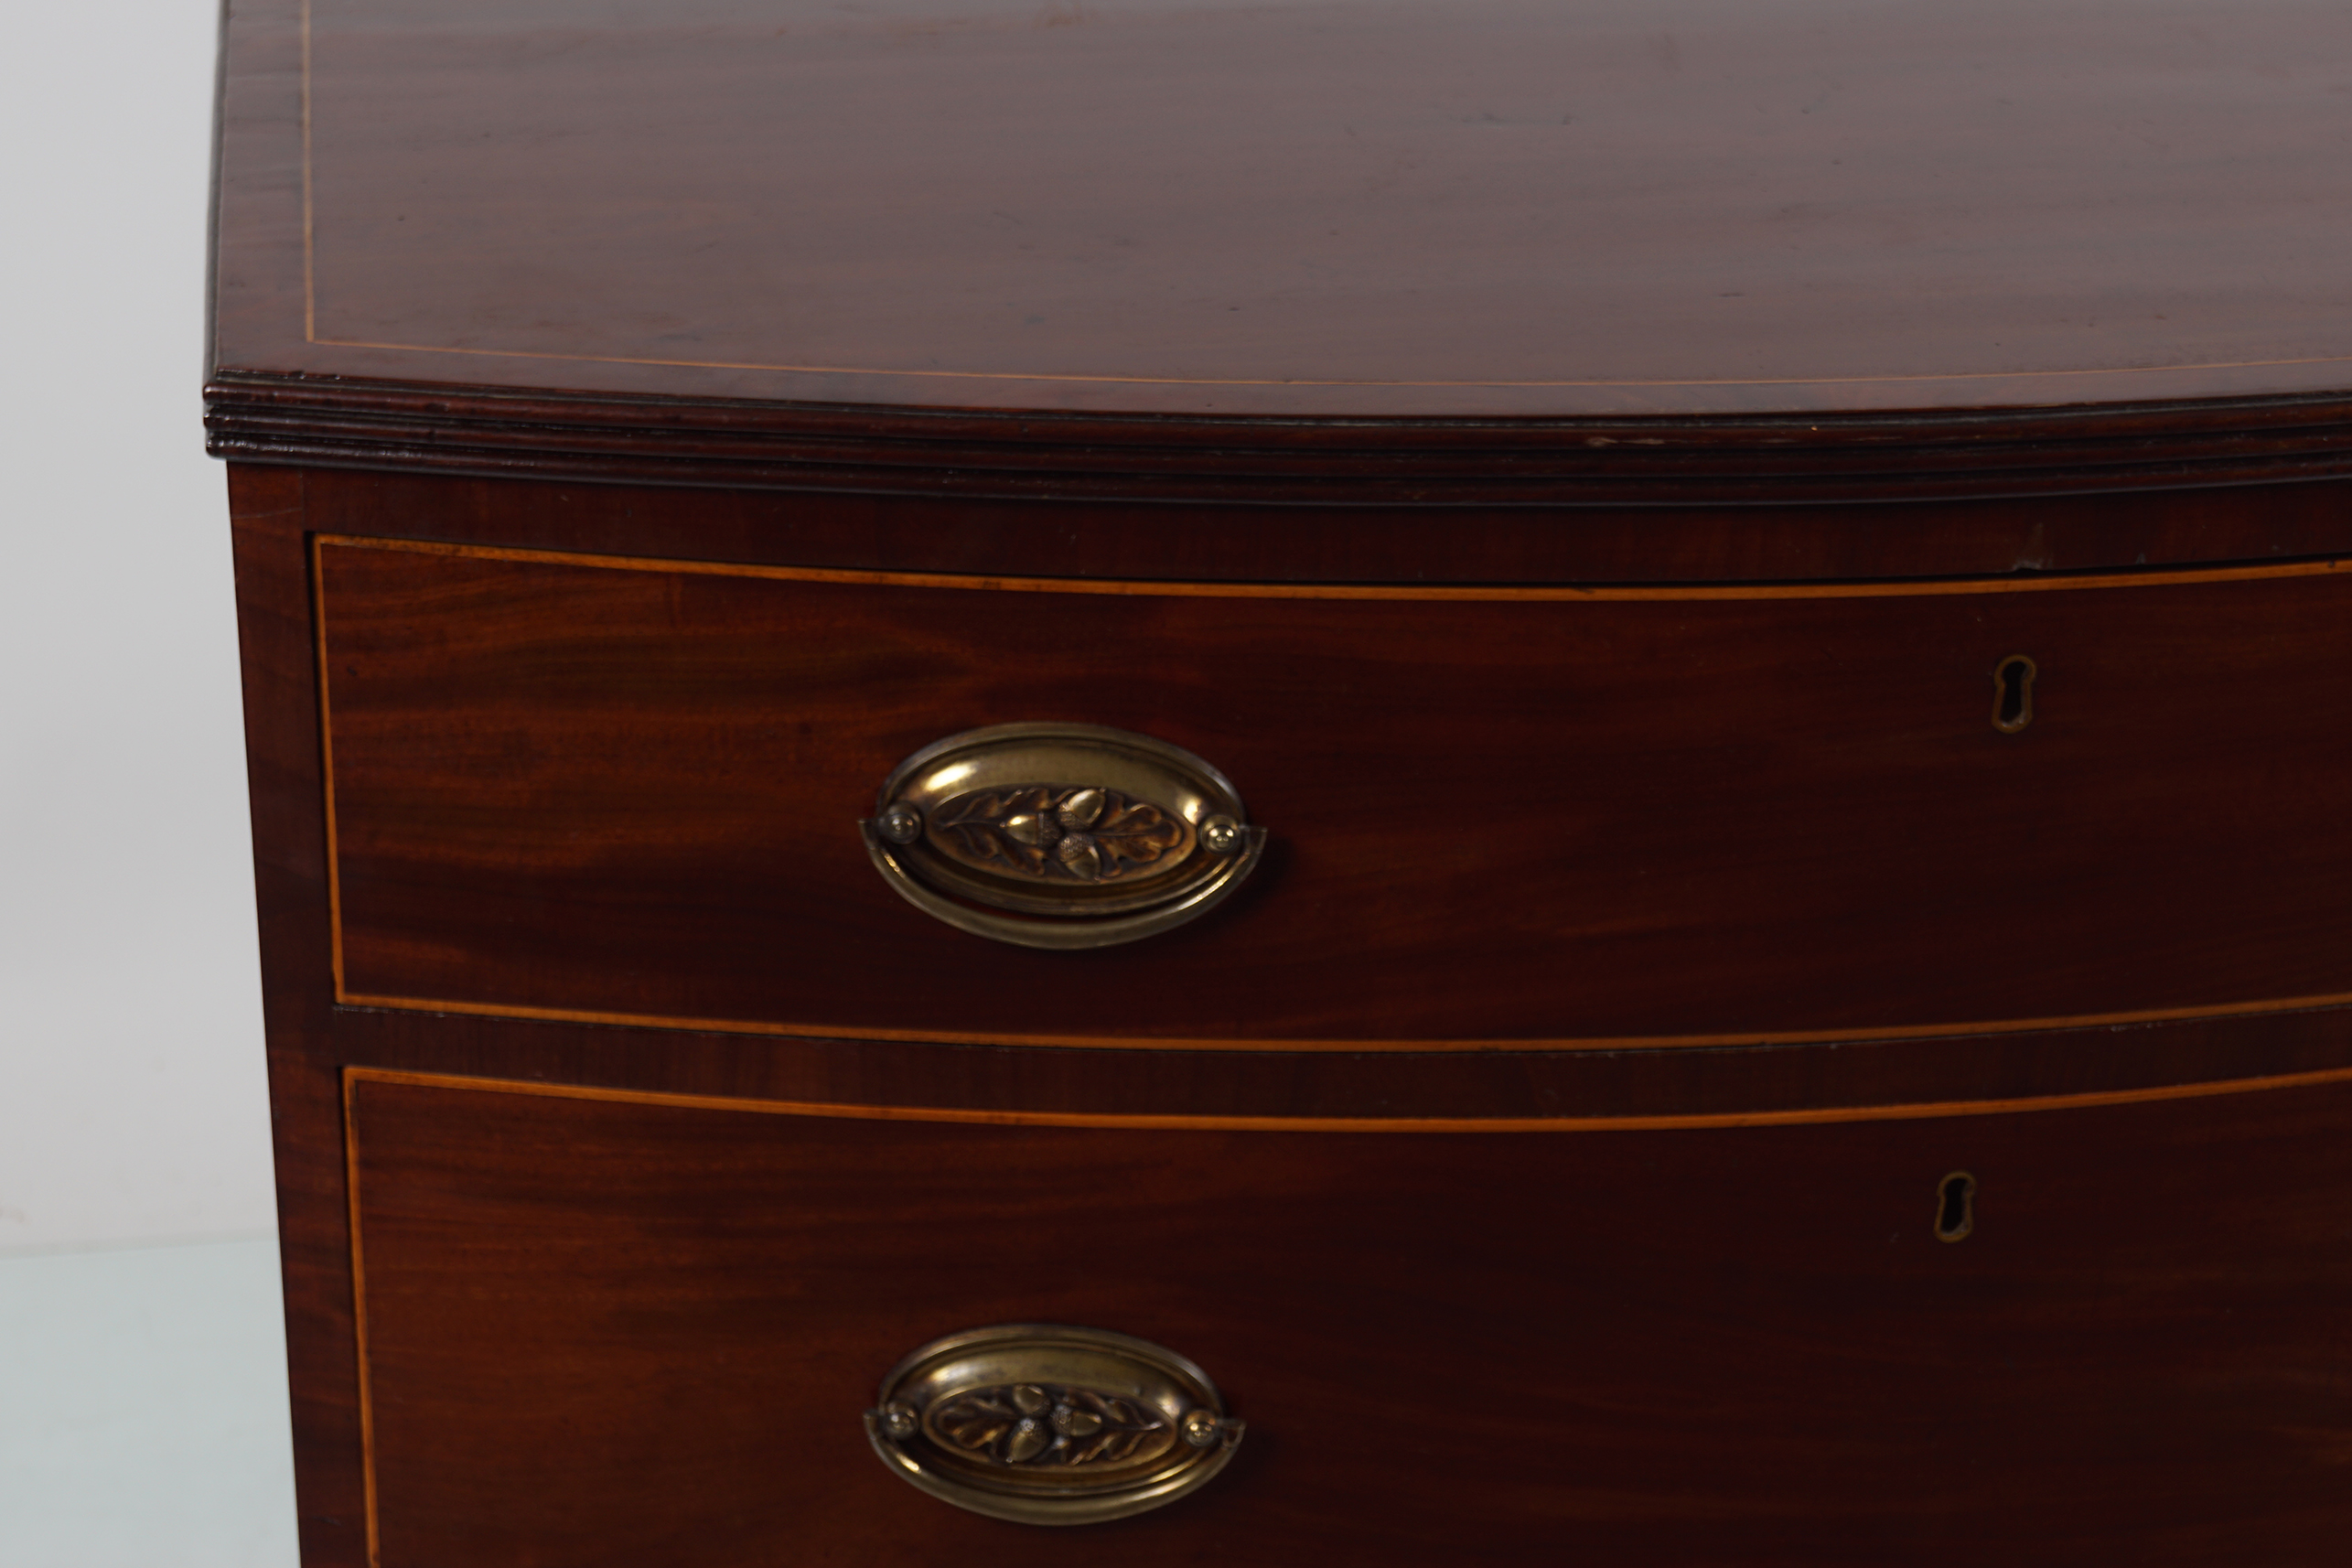 19TH-CENTURY MAHOGANY AND INLAID BOW FRONT CHEST - Image 2 of 3